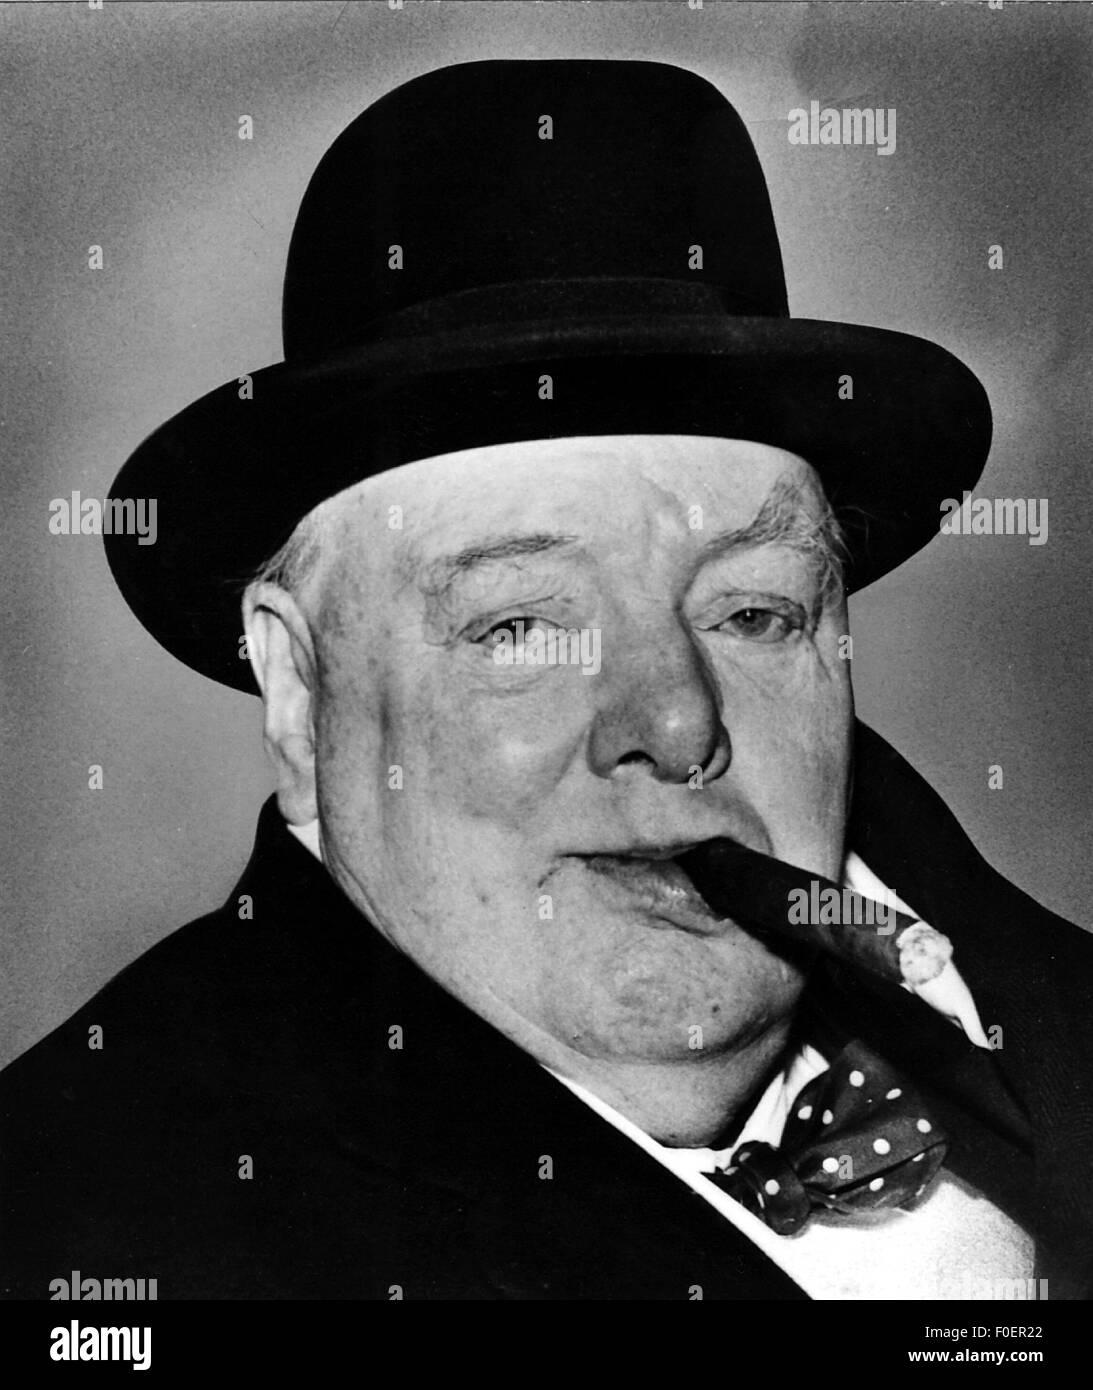 Churchill, Winston, 30.11.1874 - 24.1.1965, British politician (Cons.), portrait, circa 1960, Additional-Rights - Stock Image